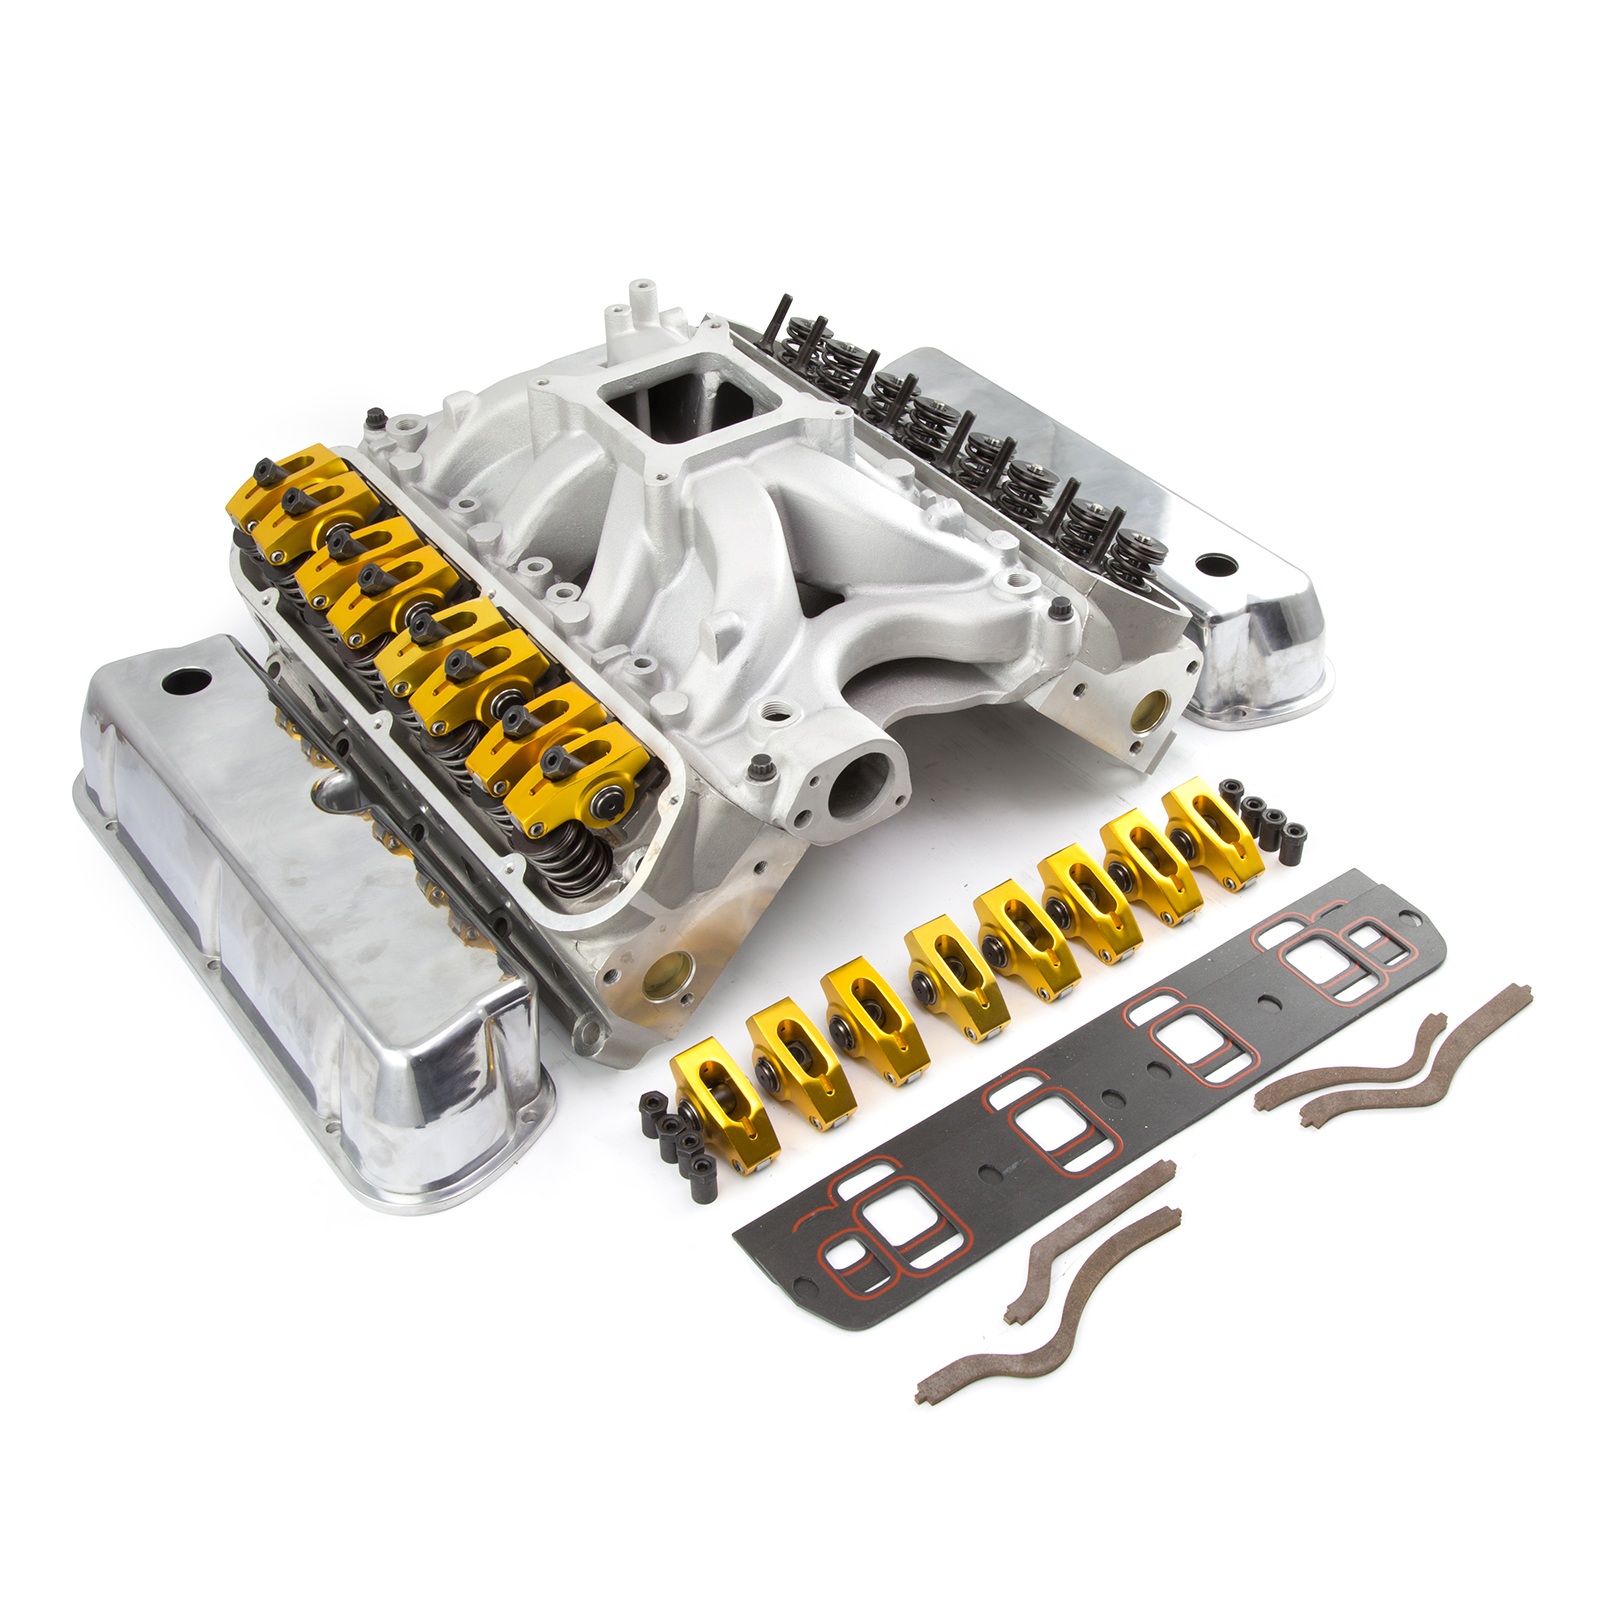 Ford 351W Windsor Solid Roller CNC Cylinder Head Top End Engine Combo Kit